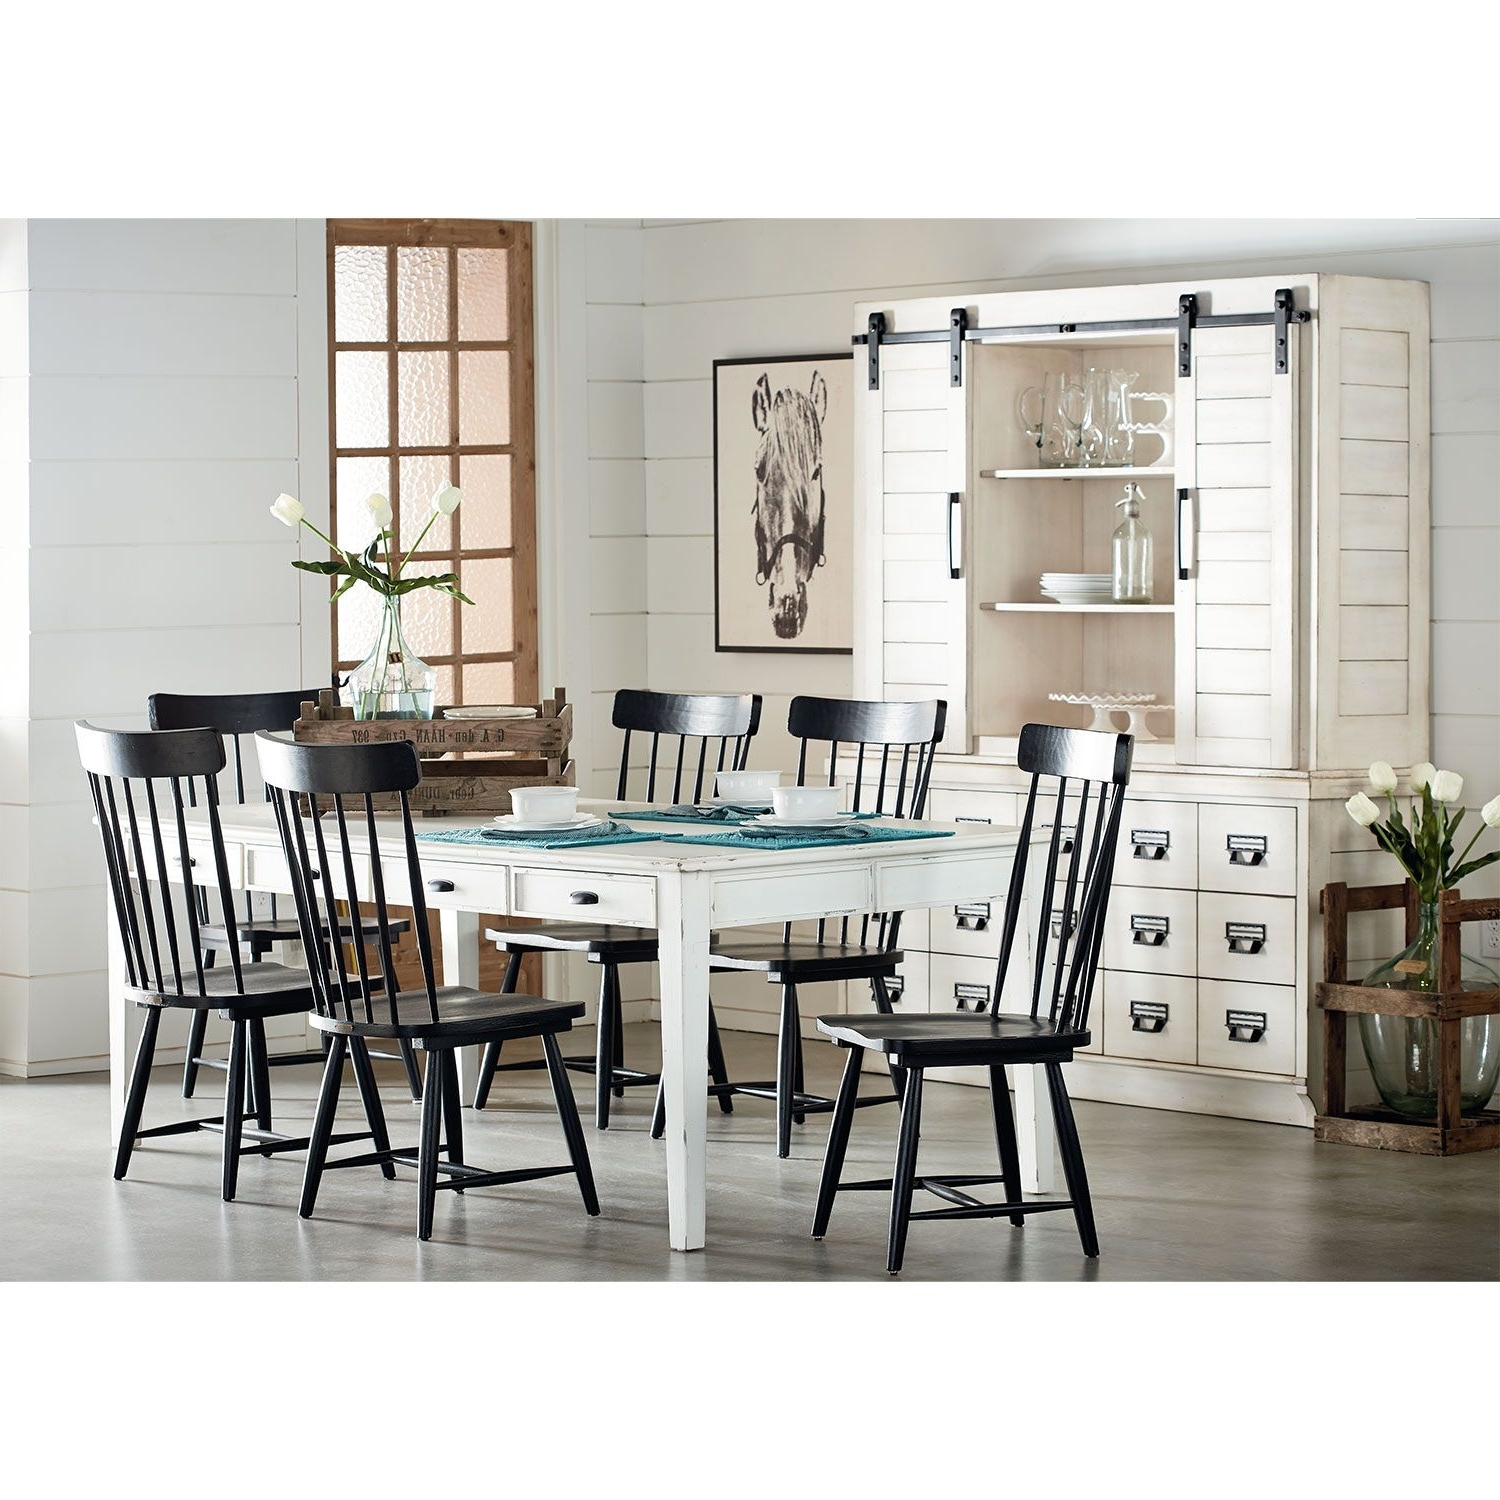 Well Liked Magnolia Home Emery Ivory Burlap Side Chairs For Farmhouse Keeping Table, Six Farmhouse Spindle Back Chairs And Two (View 14 of 20)